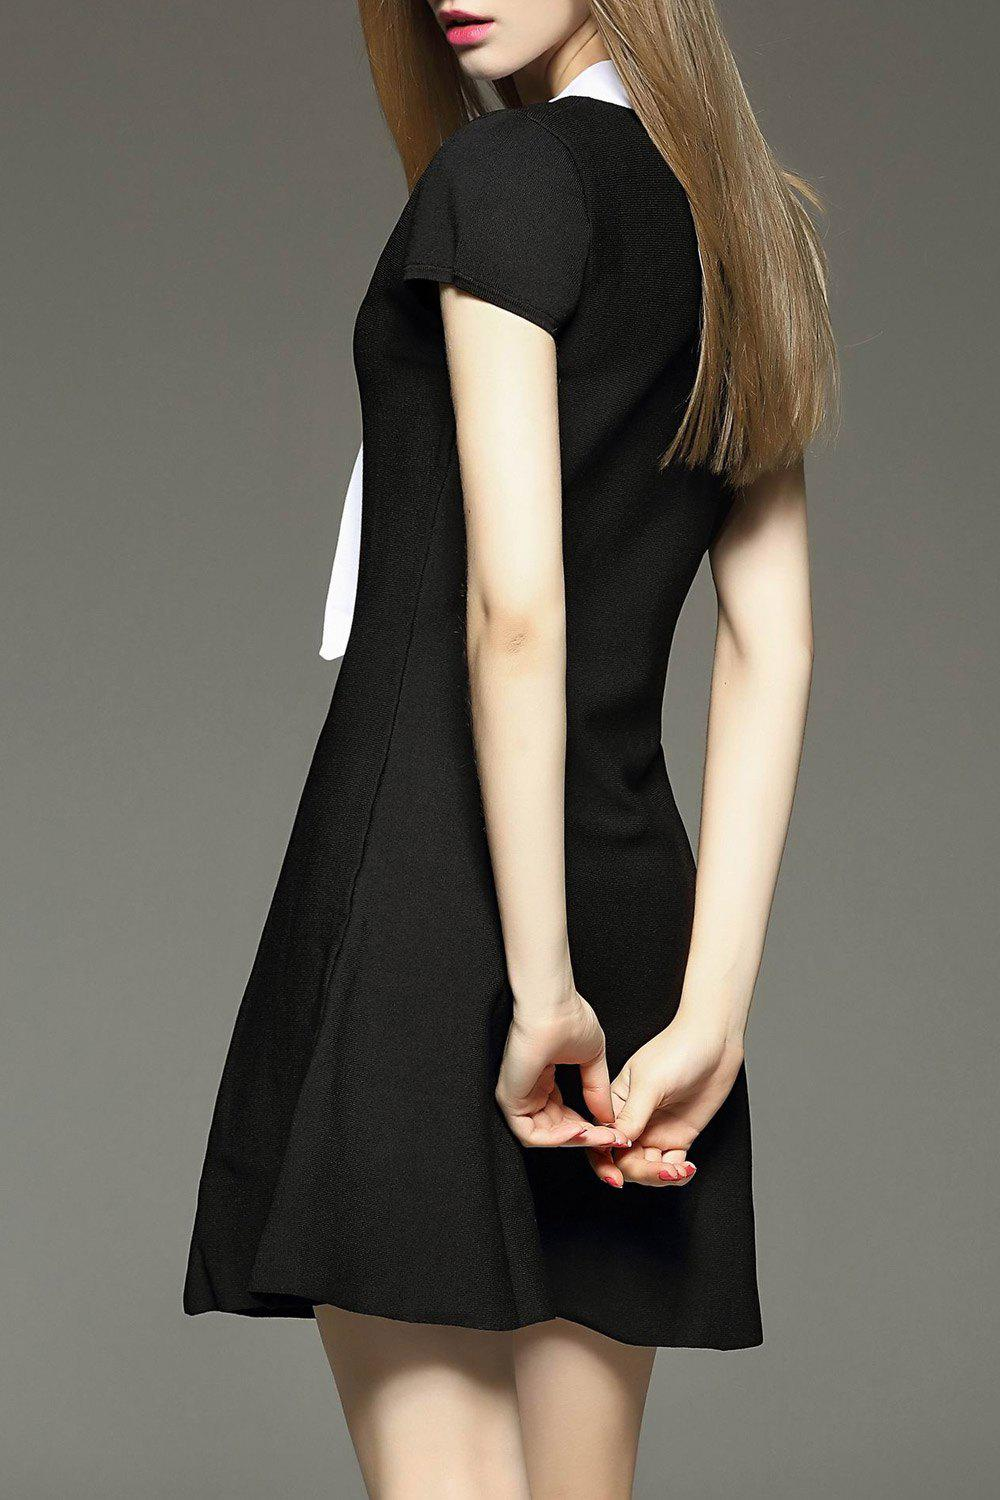 Bow Collar Mini Flare Dress - BLACK M